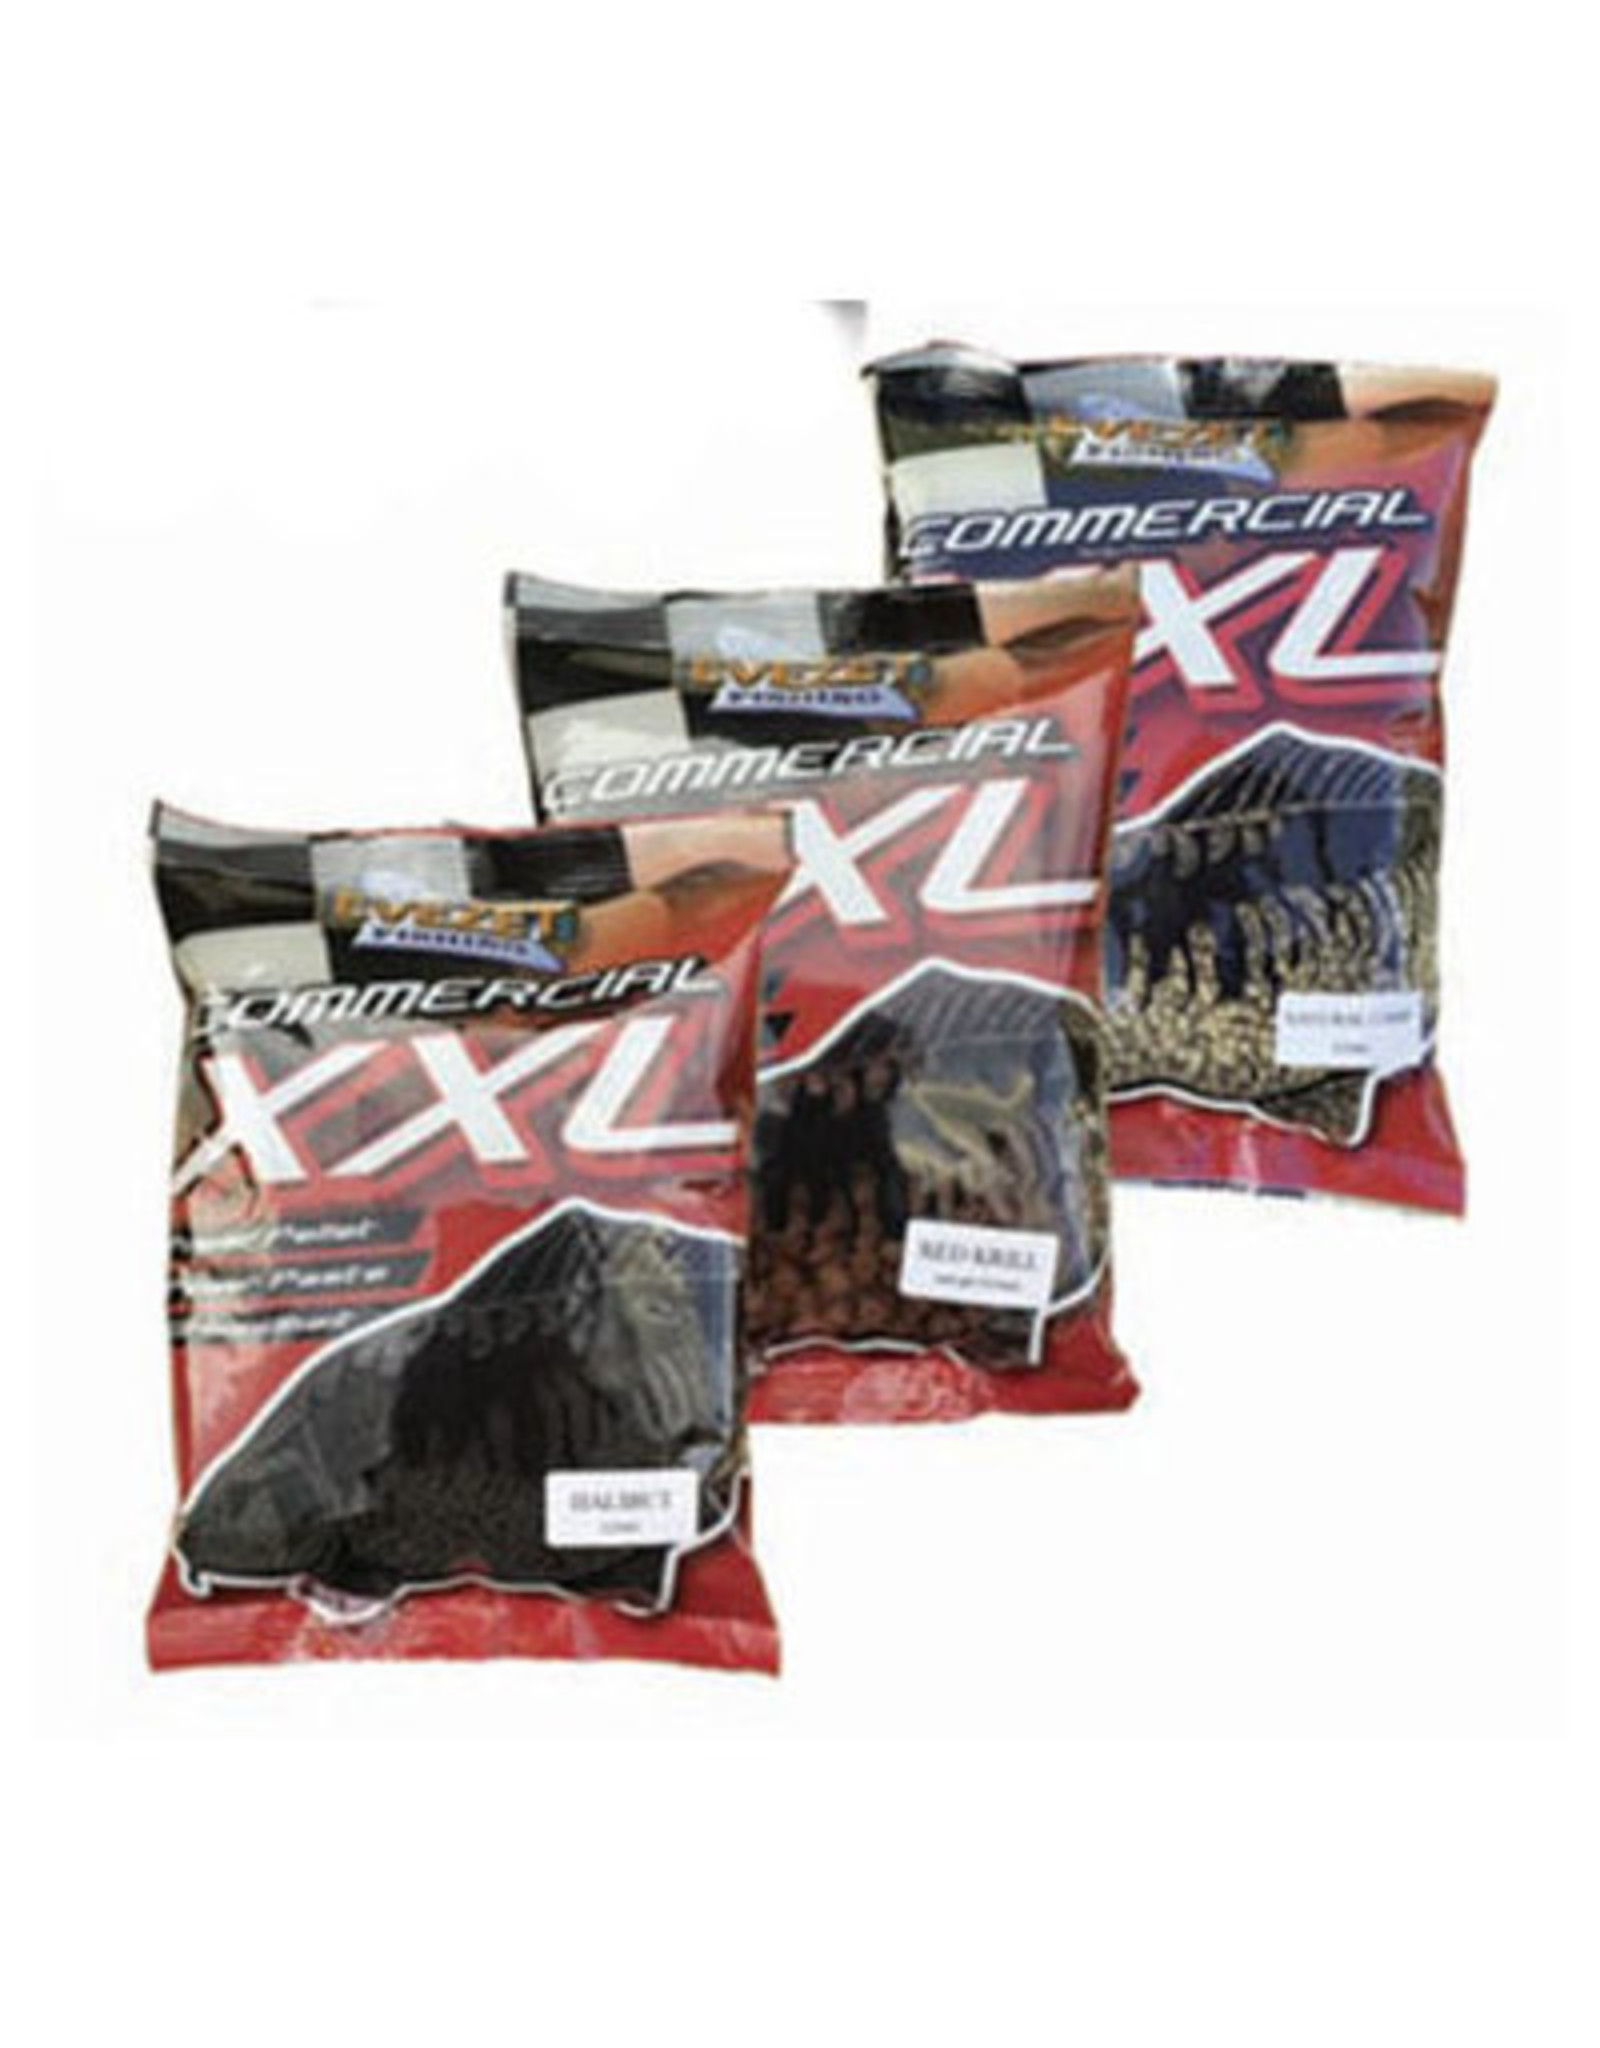 evezet Evezet Commercial XXL Power pellet Halibut